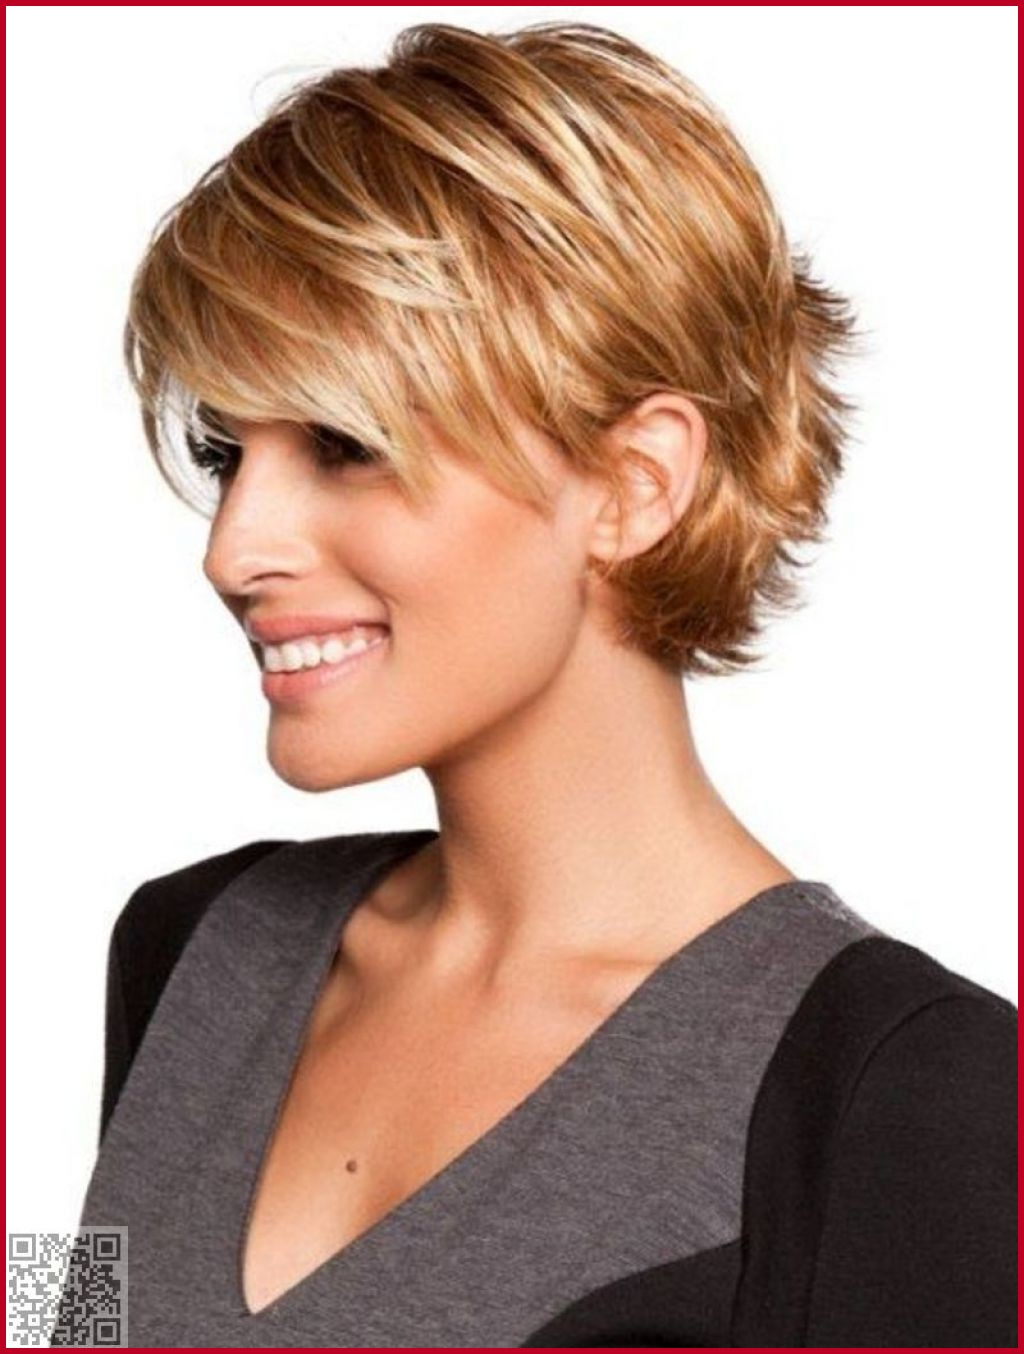 Short Hairstyles For Fine Hair Oval Face 448575 ˆš 24 Awesome Short Within Short Hairstyles For Fine Hair Oval Face (View 20 of 25)